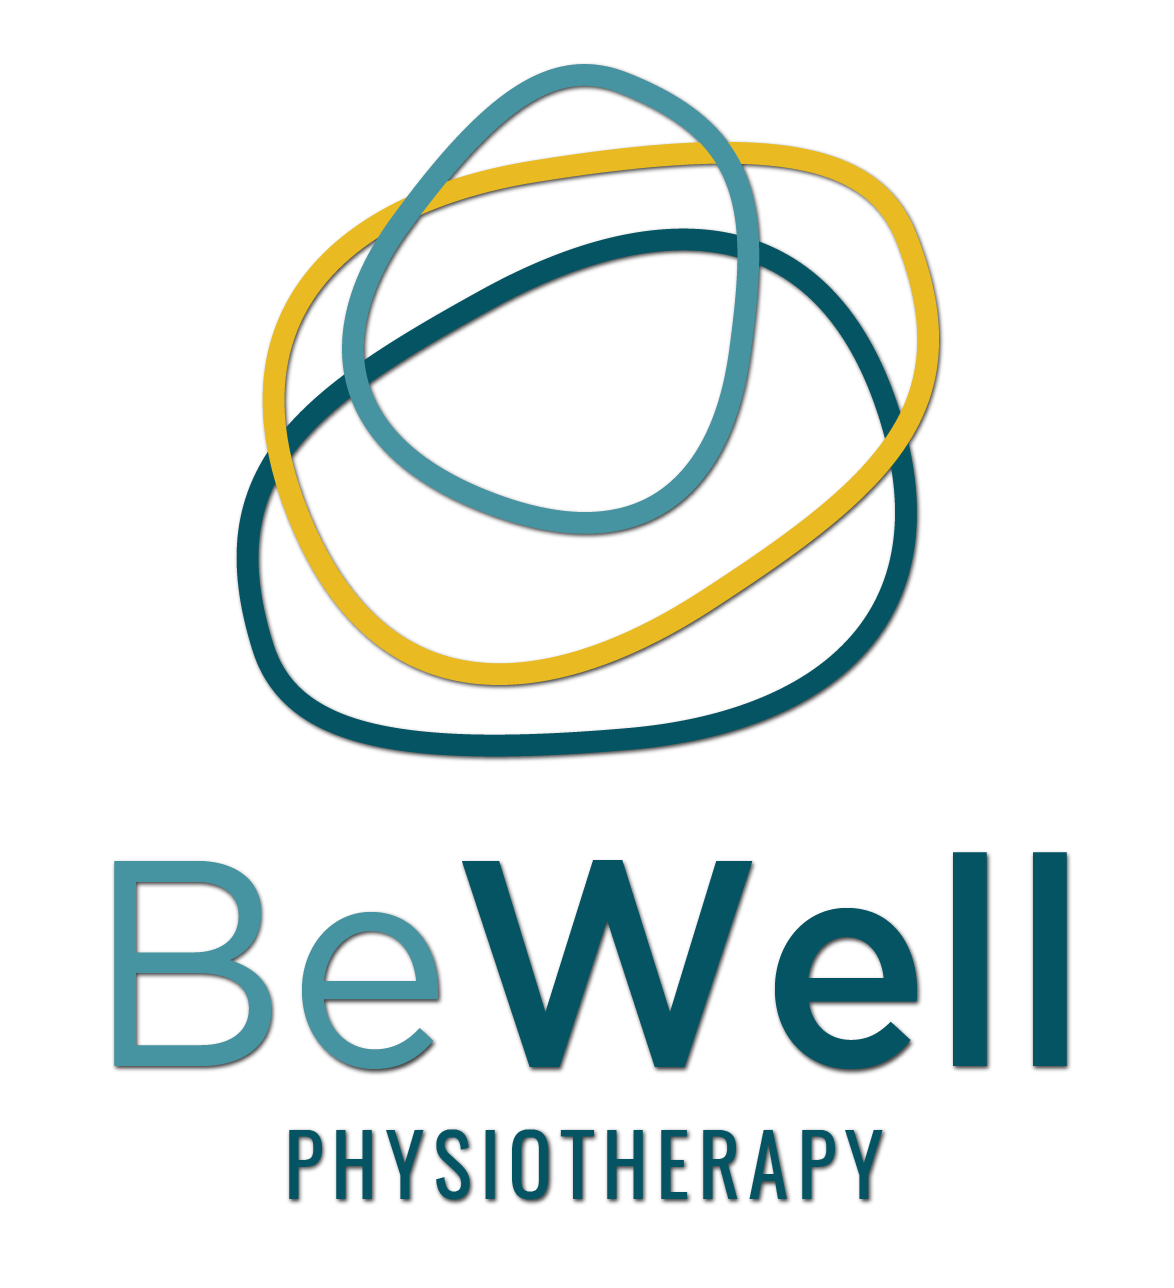 BeWell Physiotherapy